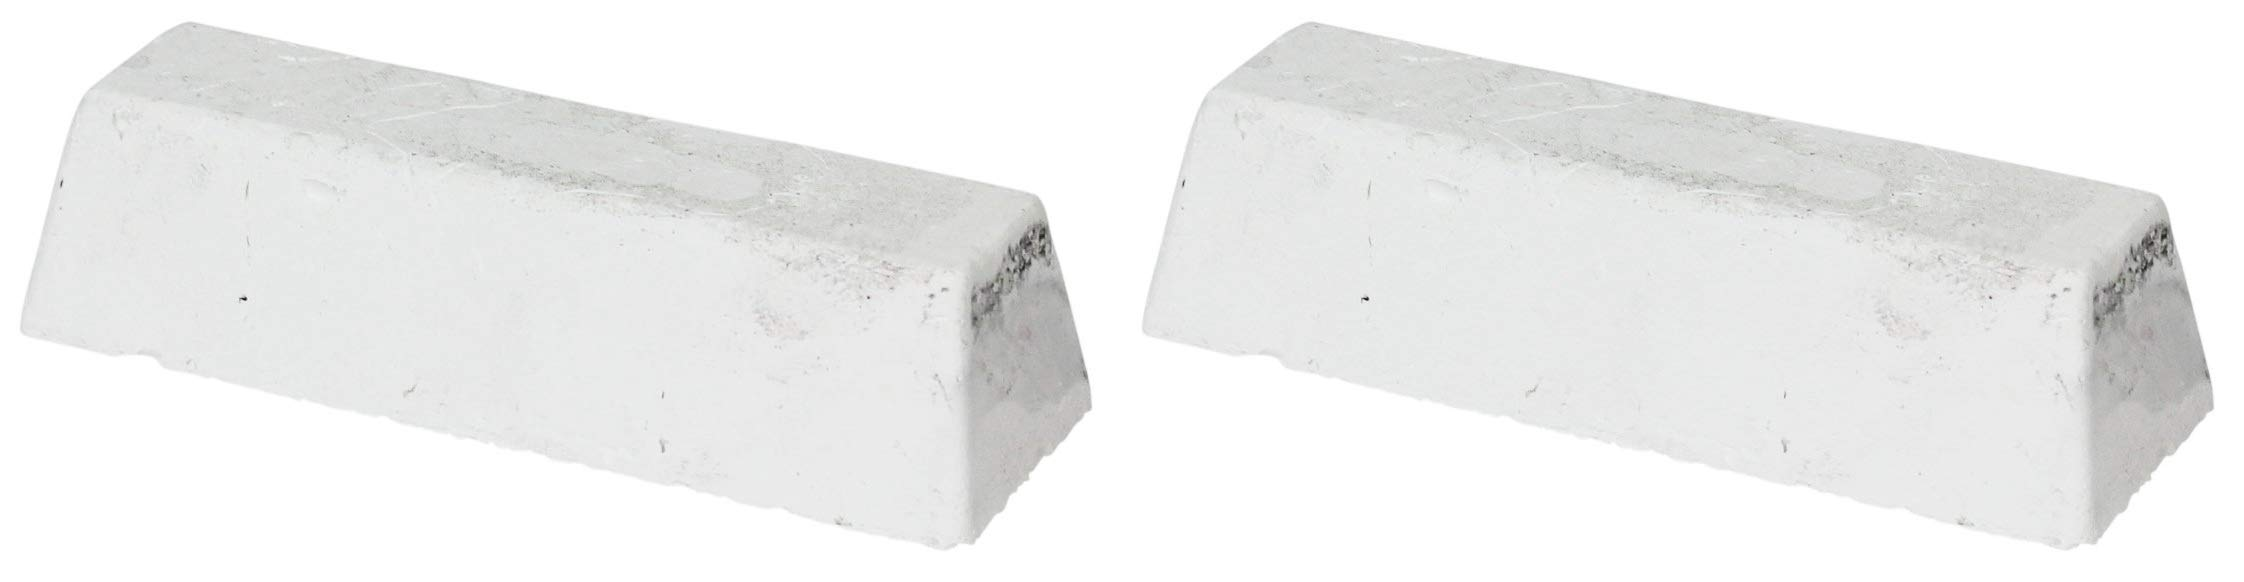 JacksonLea 47332SP White Buffing Compound, Standard Bar, 1-1/2'' Width x 1-1/4'' Height x 6-1/4'' Length (Тwо Расk)